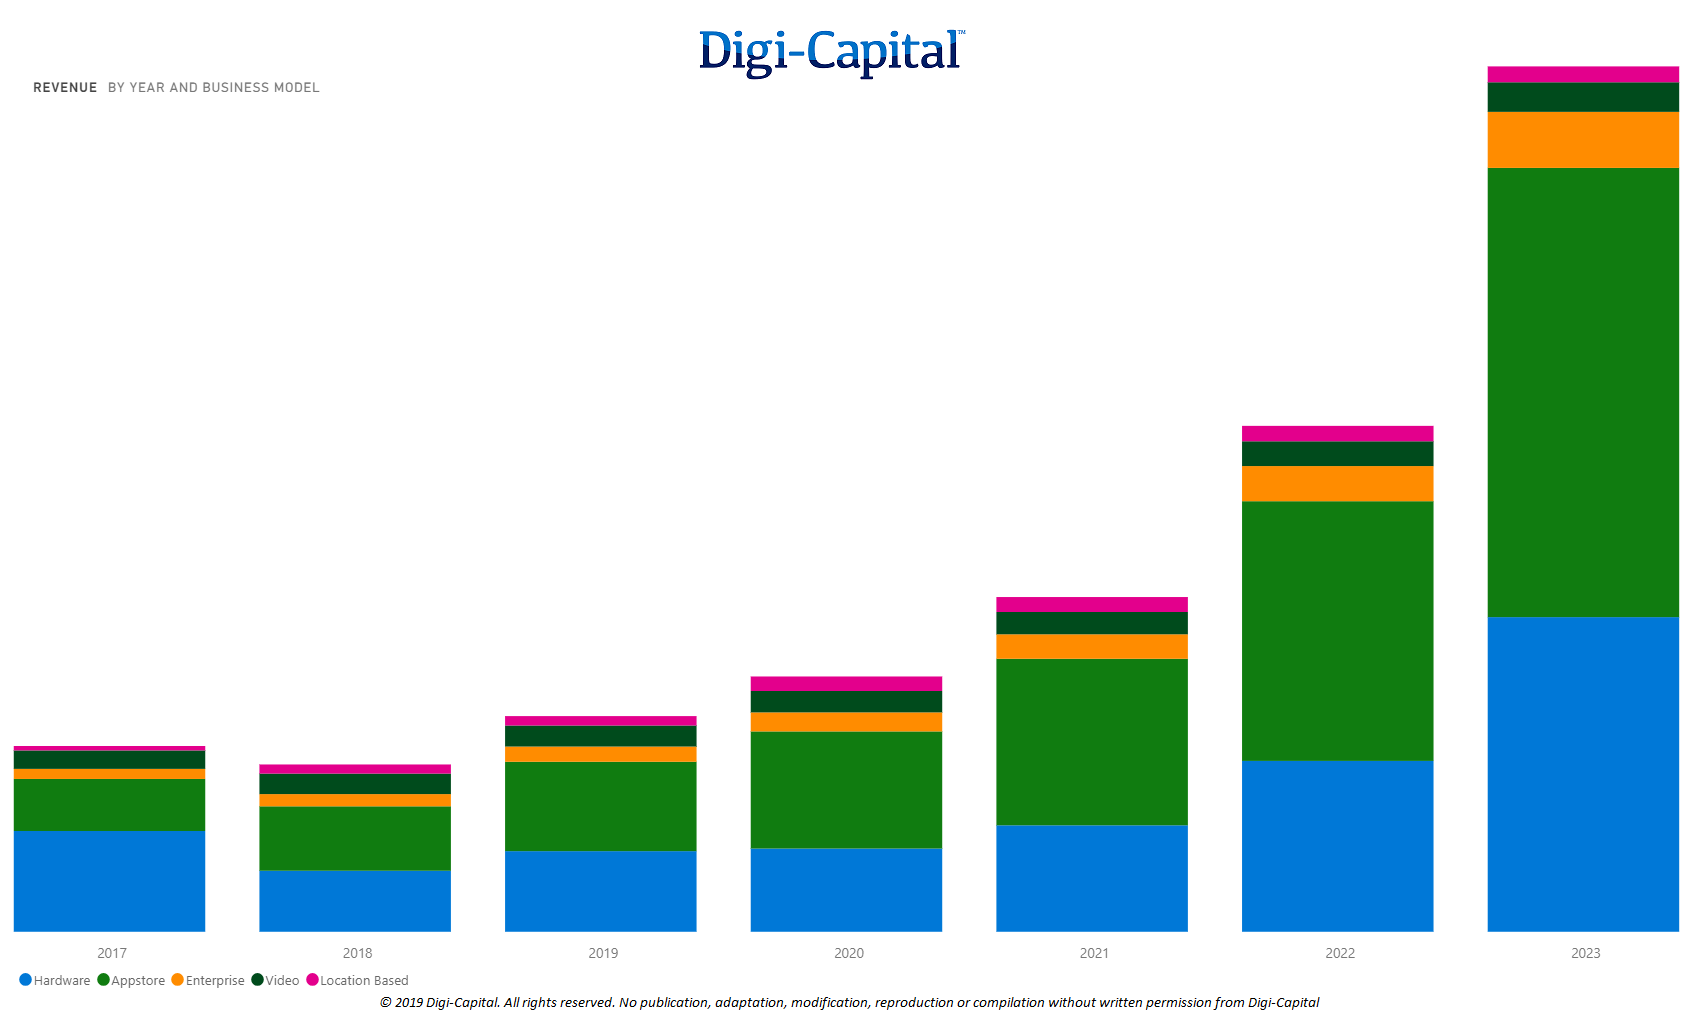 VR Business Model Revenue (Source: Digi-Capital AR/VR Analytics Platform)